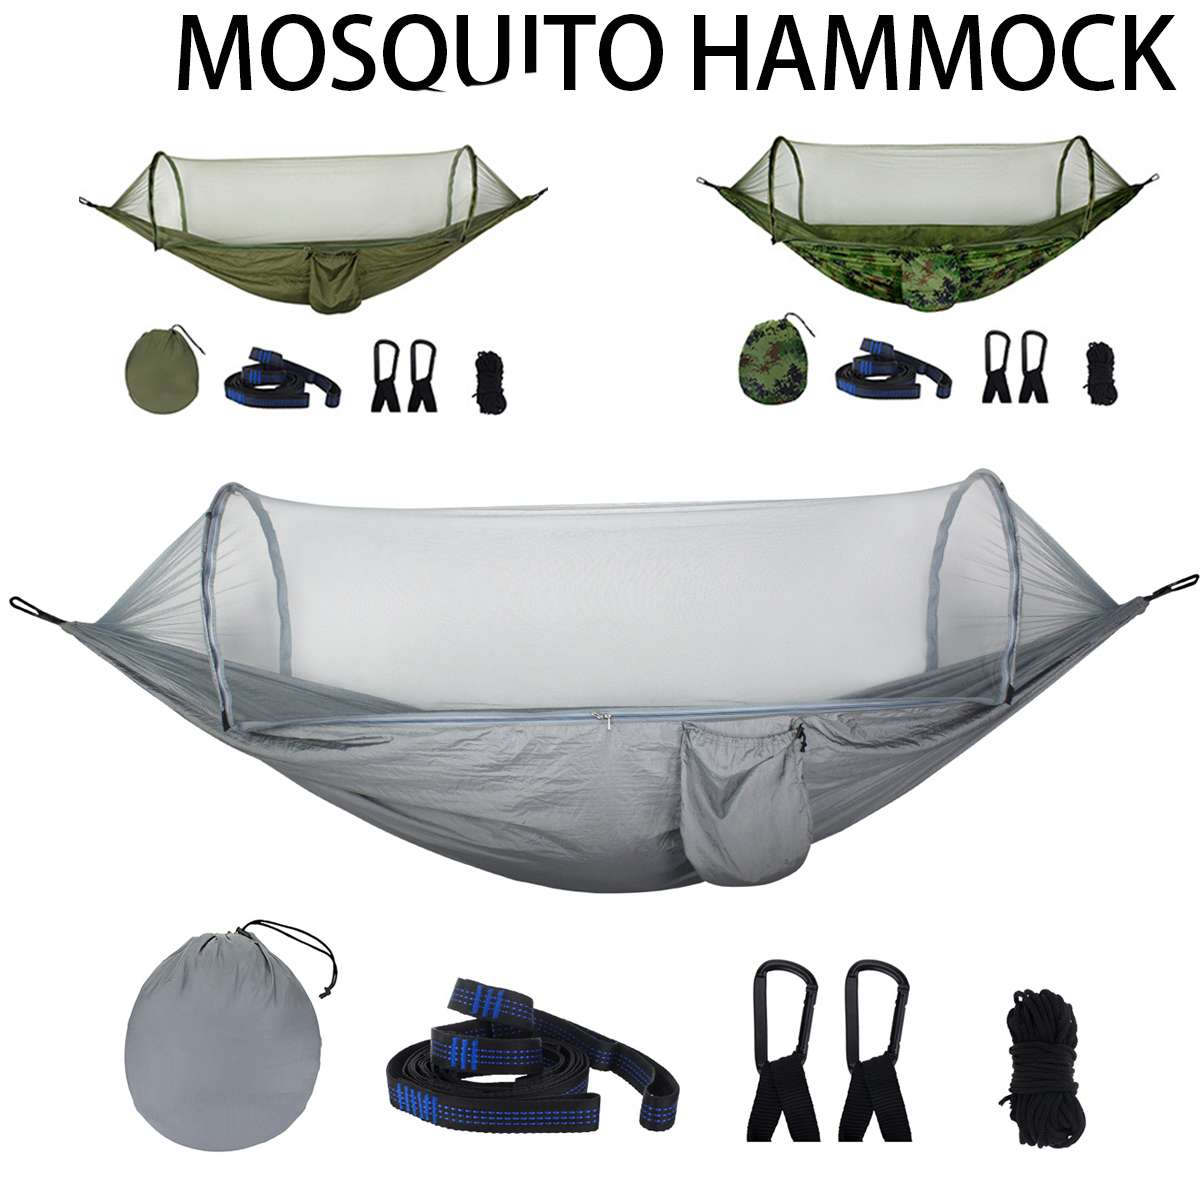 Auto Jungle Hammock With Mosquito Net Outdoor Camping Travel Parachute Hanging Bed Tent Hunting Sleeping Swing Army 1-2 Person